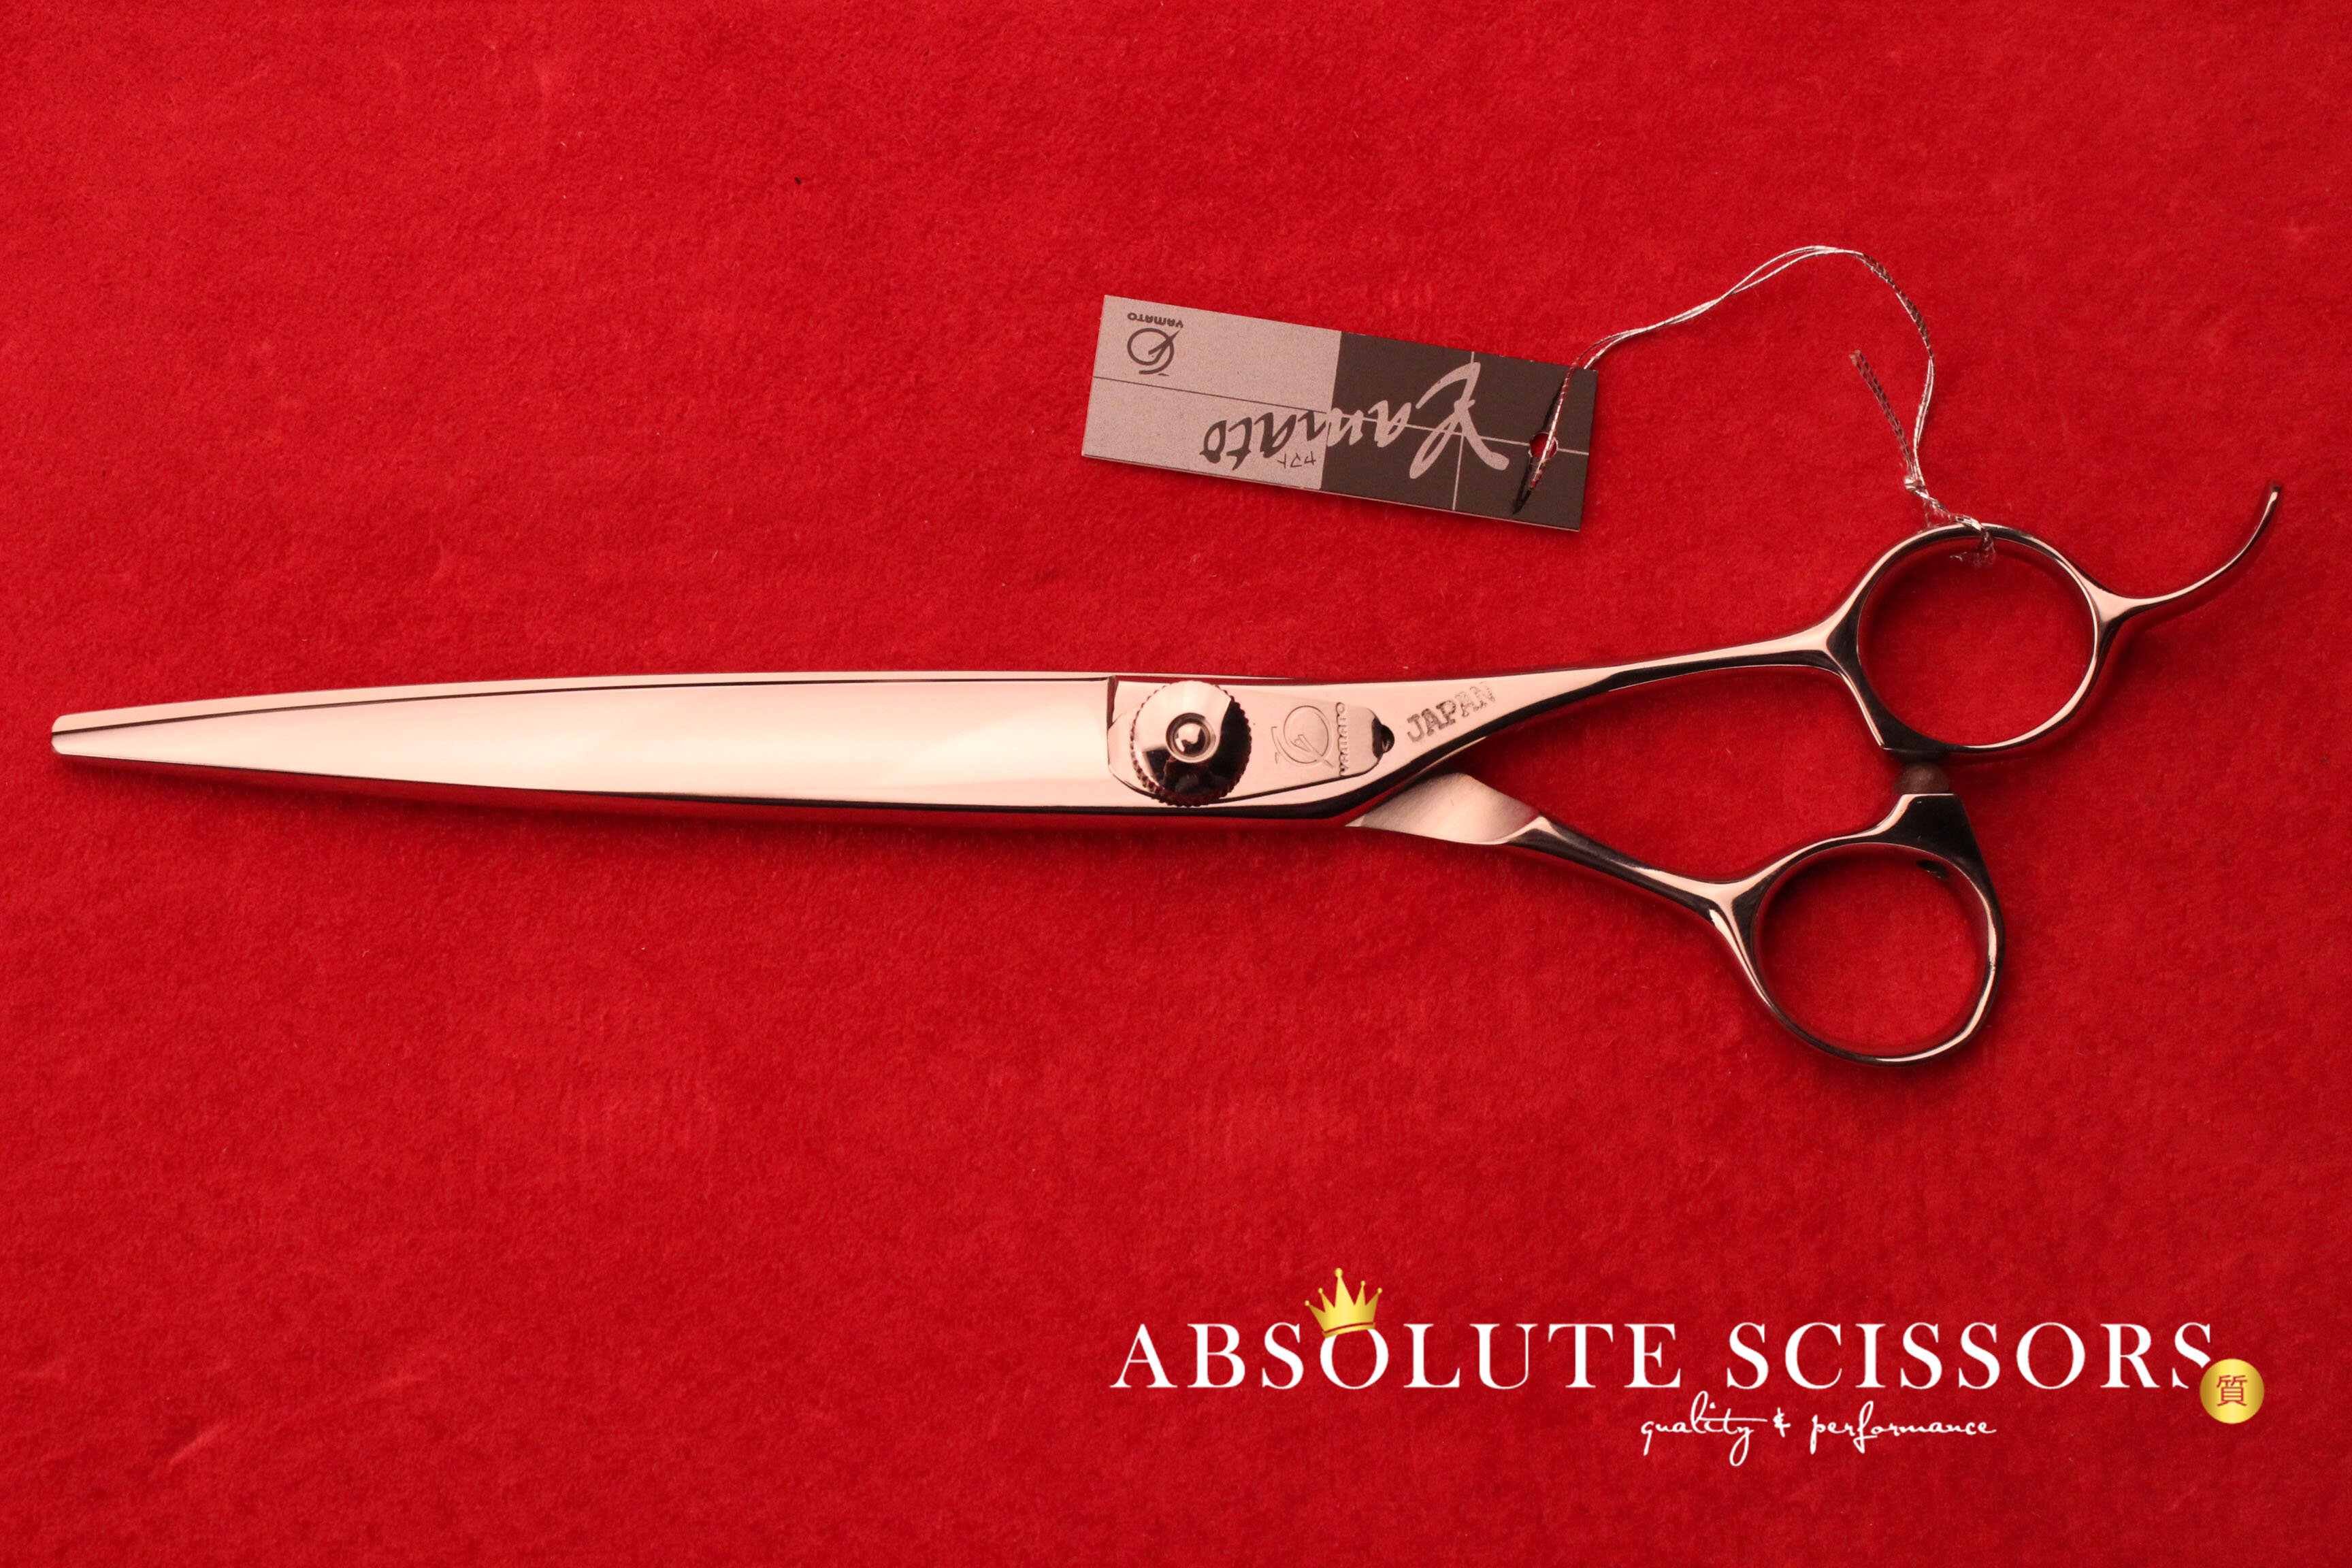 A75 3782 Yamato hair scissors size 7.5 inches